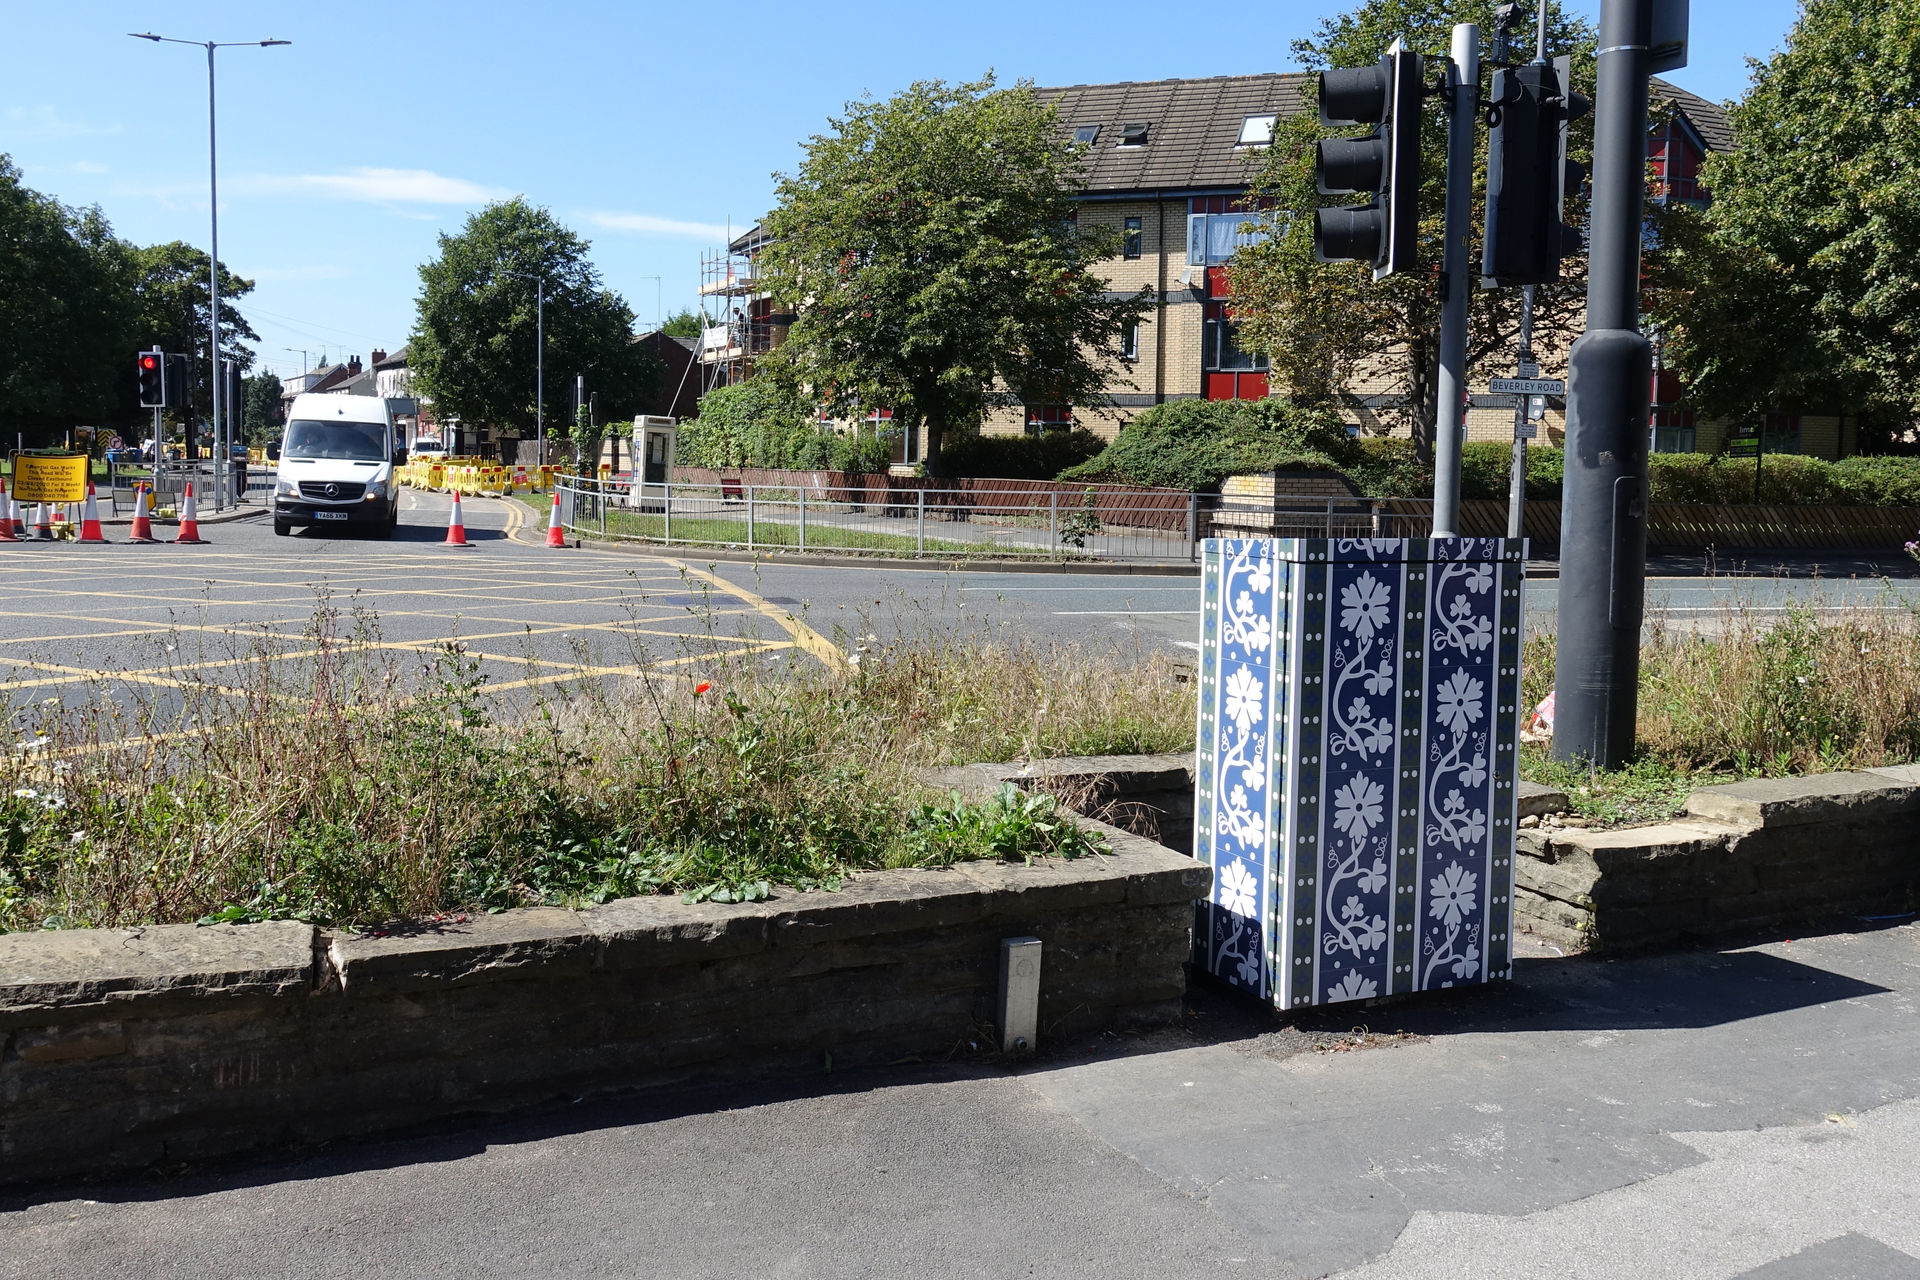 Tile signal control box art on Beverley Road, Hull by Lydia Caprani. Commissioned by Hull City Council. Sculcoates Lane Queens Road Junction.